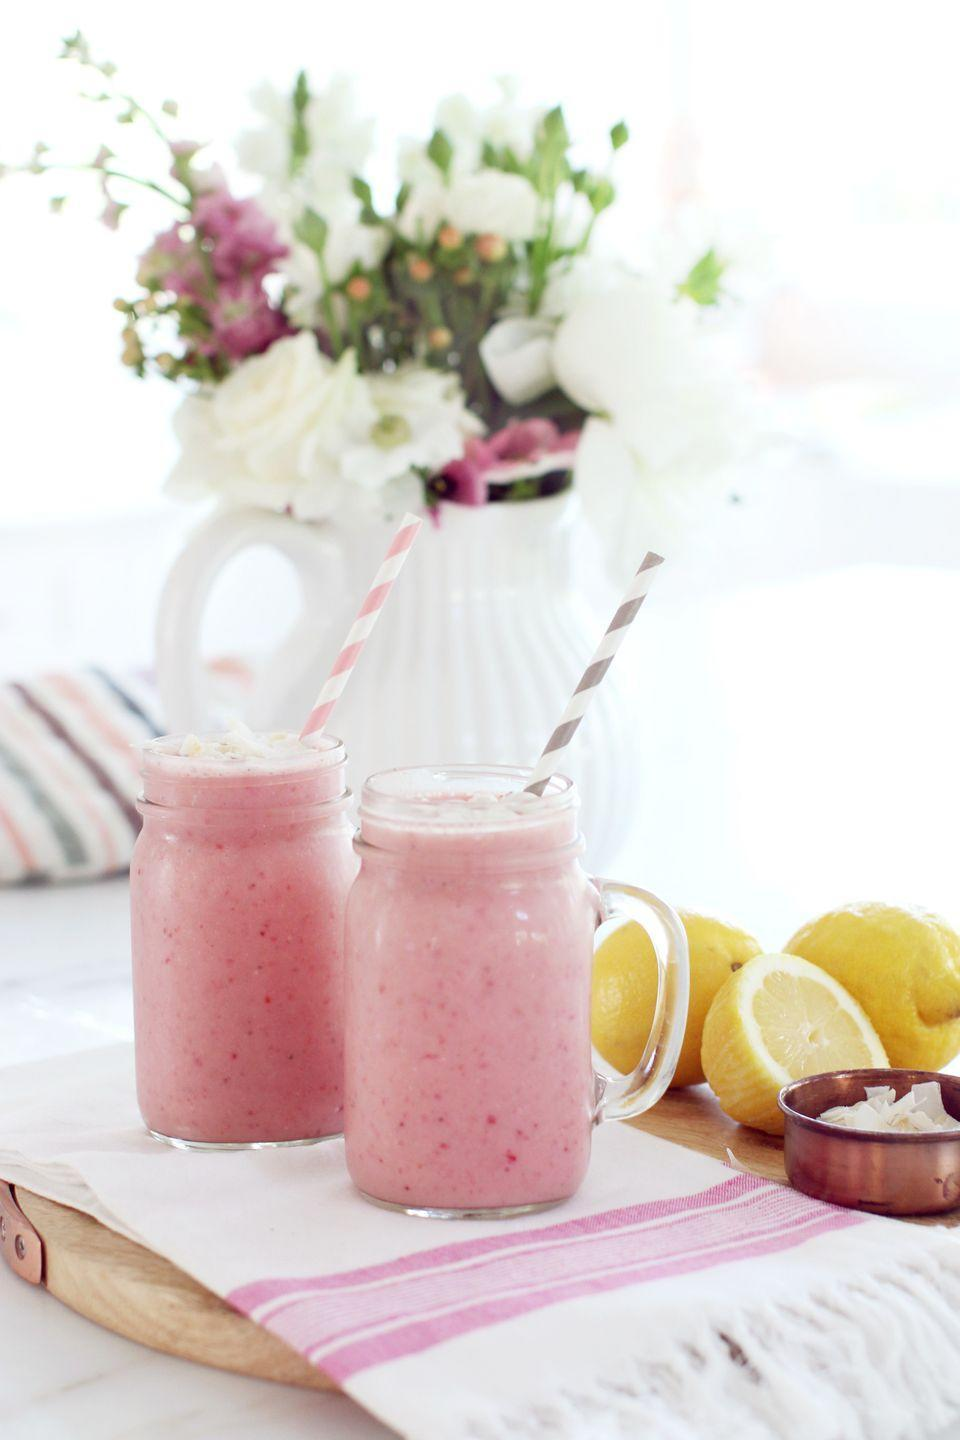 """<p>This summery smoothie features both lemon zest *and* lemon, for that extra citrus flavor. </p><p><a class=""""link rapid-noclick-resp"""" href=""""https://www.monikahibbs.com/best-strawberry-smoothie/"""" rel=""""nofollow noopener"""" target=""""_blank"""" data-ylk=""""slk:Get the recipe"""">Get the recipe</a></p>"""